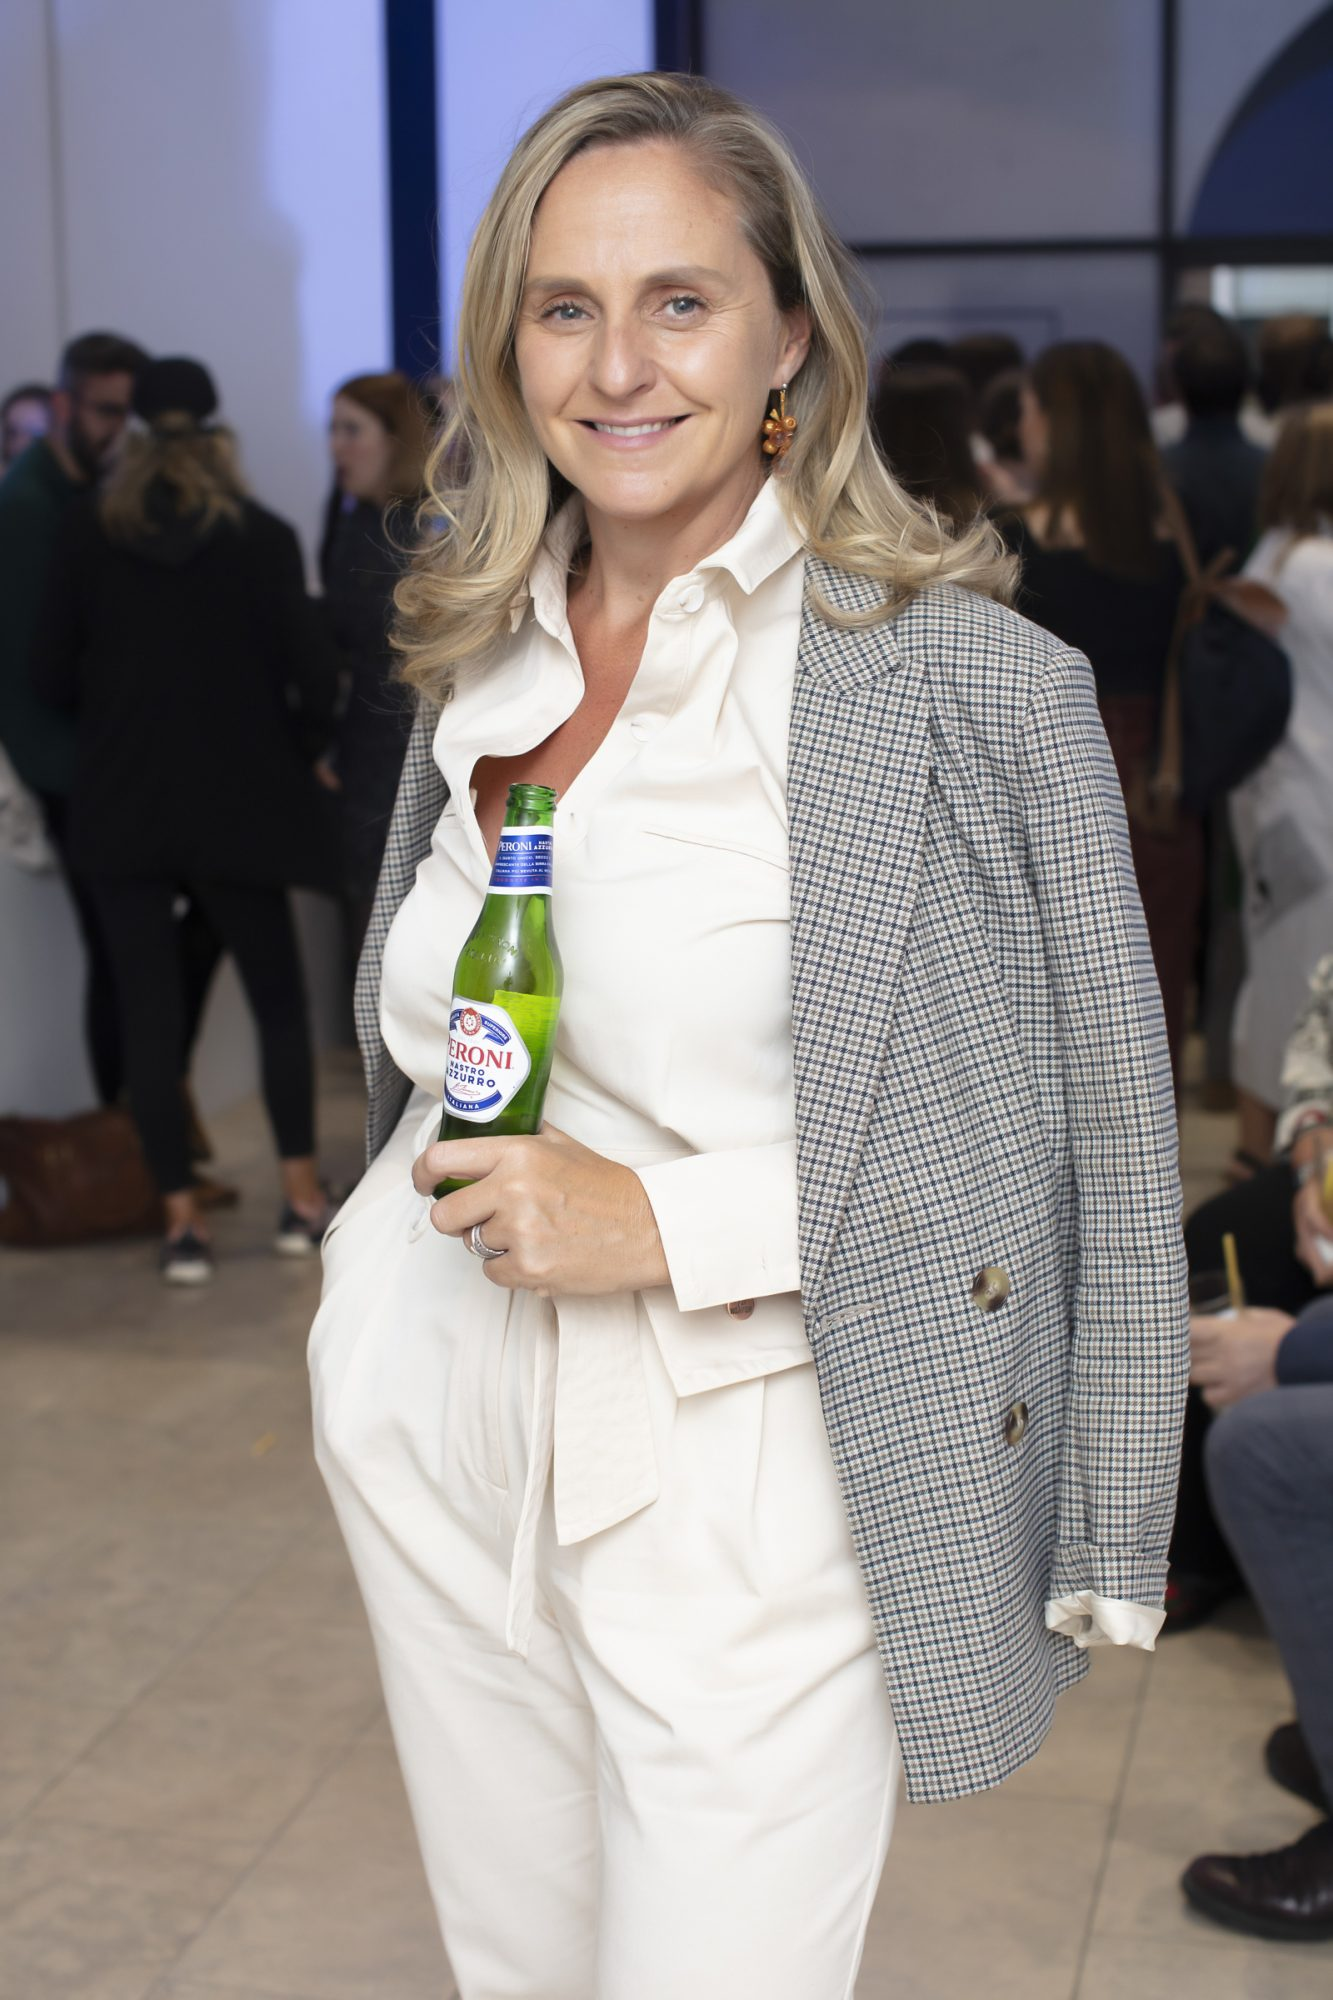 Debbie O'Donnell pictured at the launch of The House of Peroni, which is open at the RHA in Dublin until Sunday, 1st September 2019. This year's residency sees the RHA transformed into a stylish Peroni inspired experience, filled with food, drink and design. www.thehouseofperoni.com Photo: Anthony Woods.